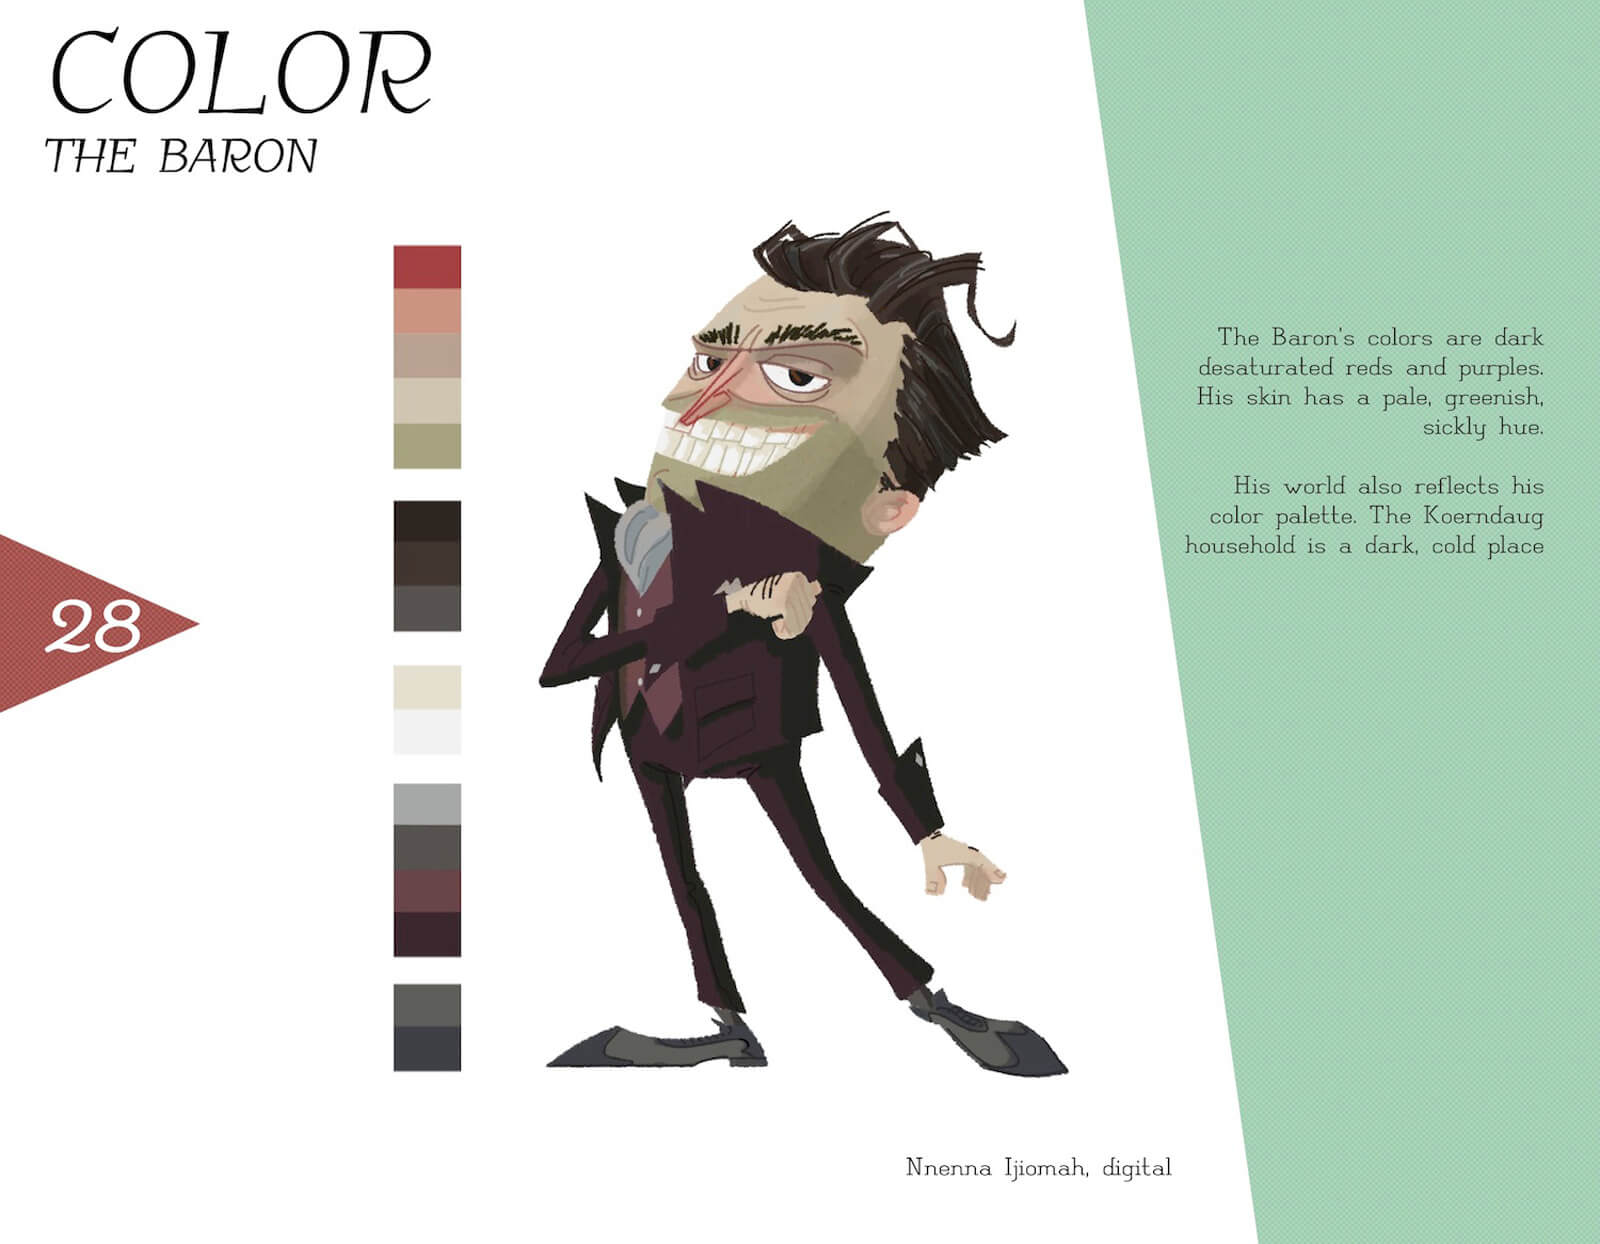 Color profile of the character Baron von Koerndaug, with a posing Baron in a maroon suit